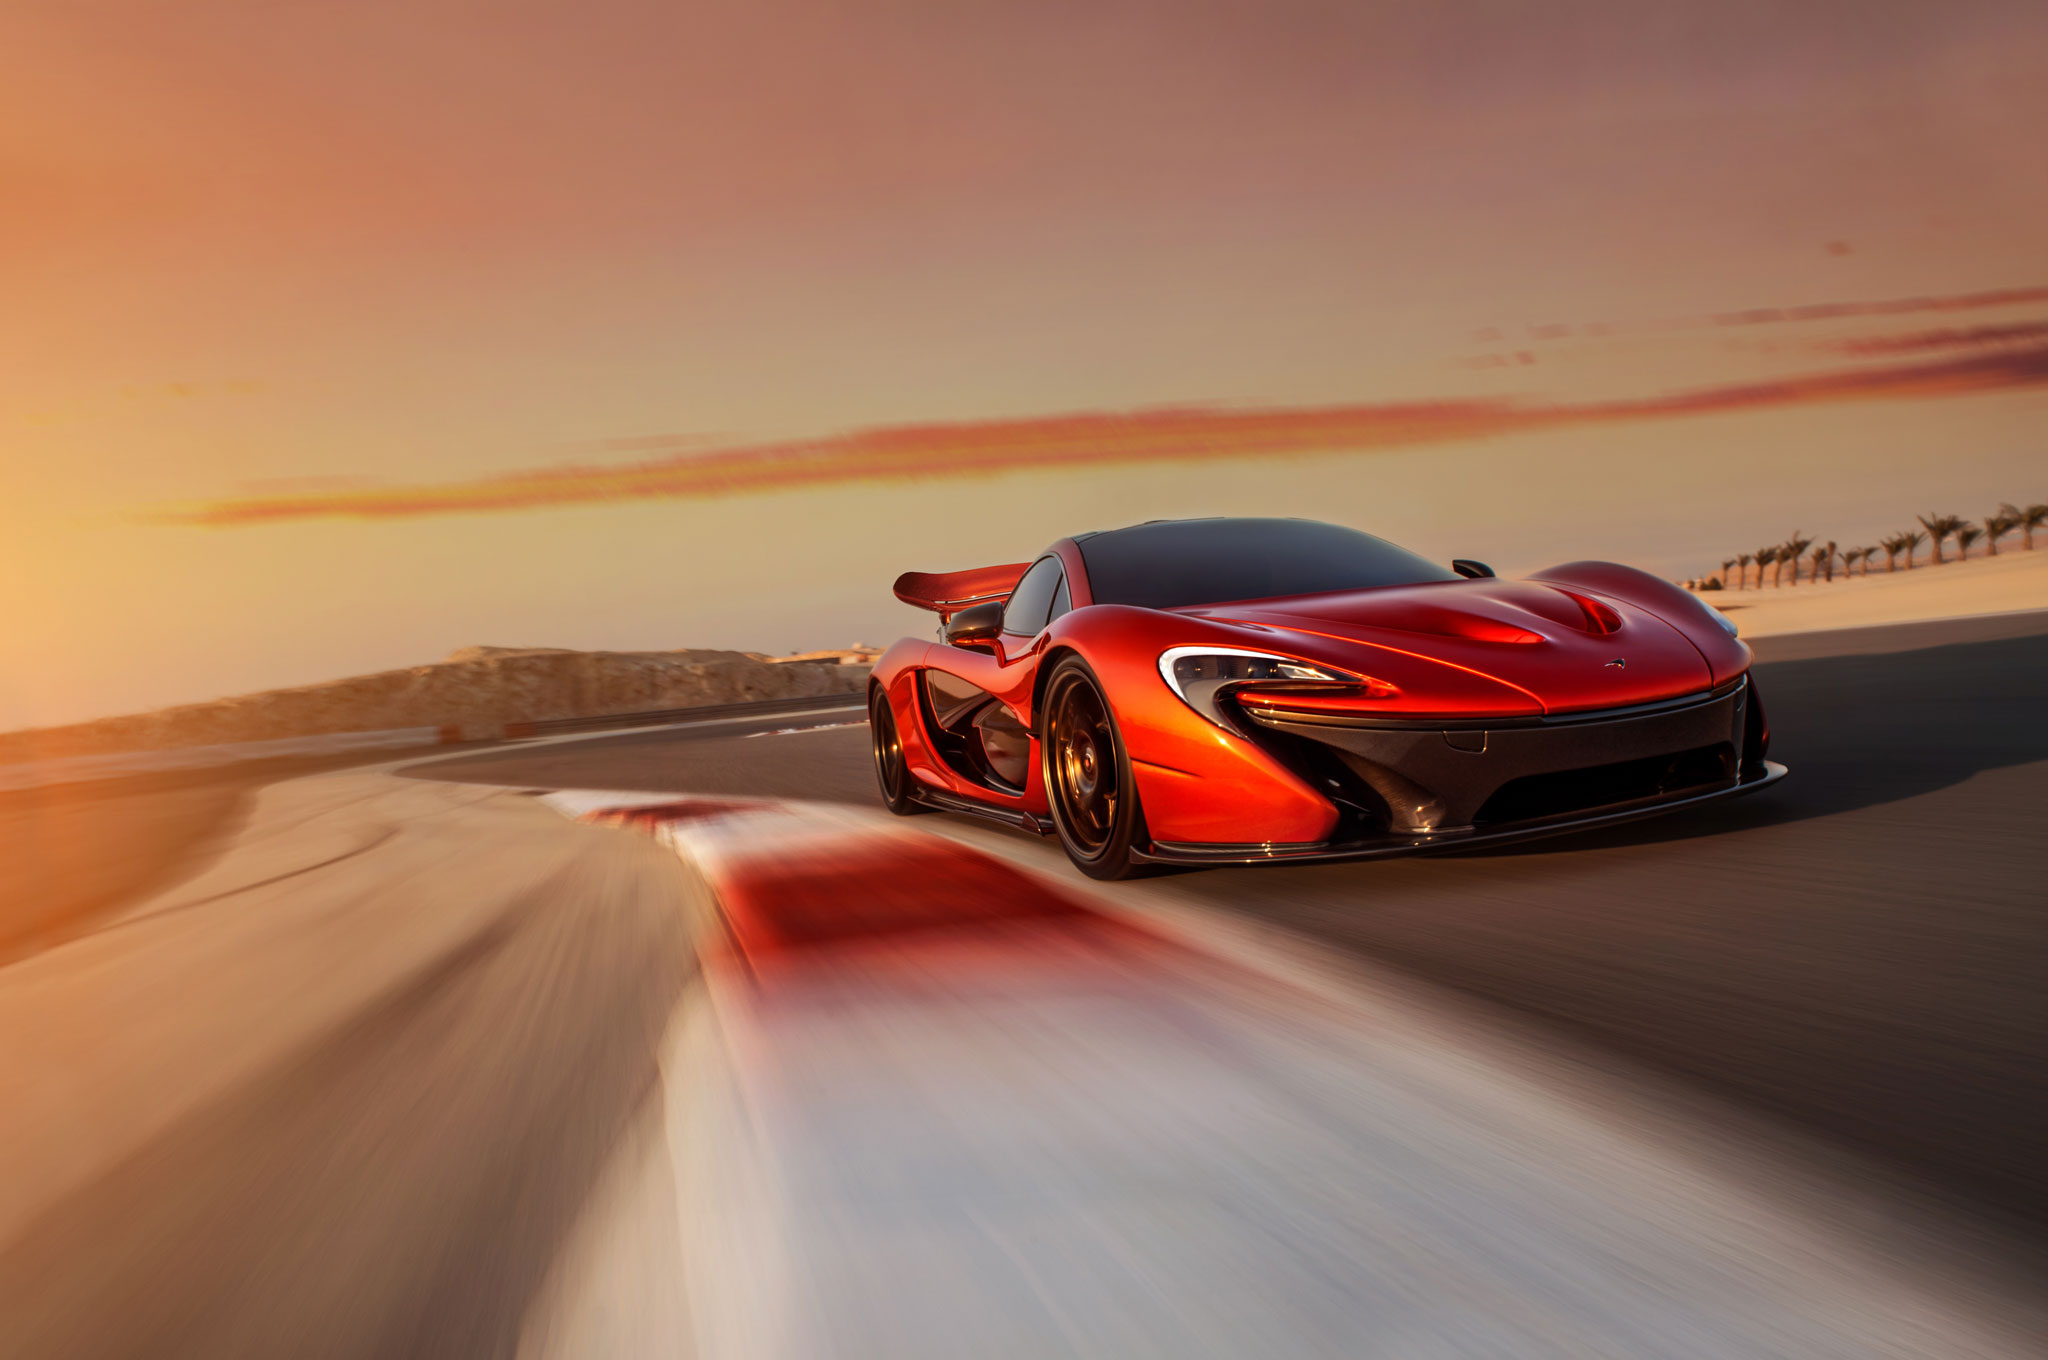 Video Claims McLaren P1 Lapped 'Ring in Under 7 Minutes